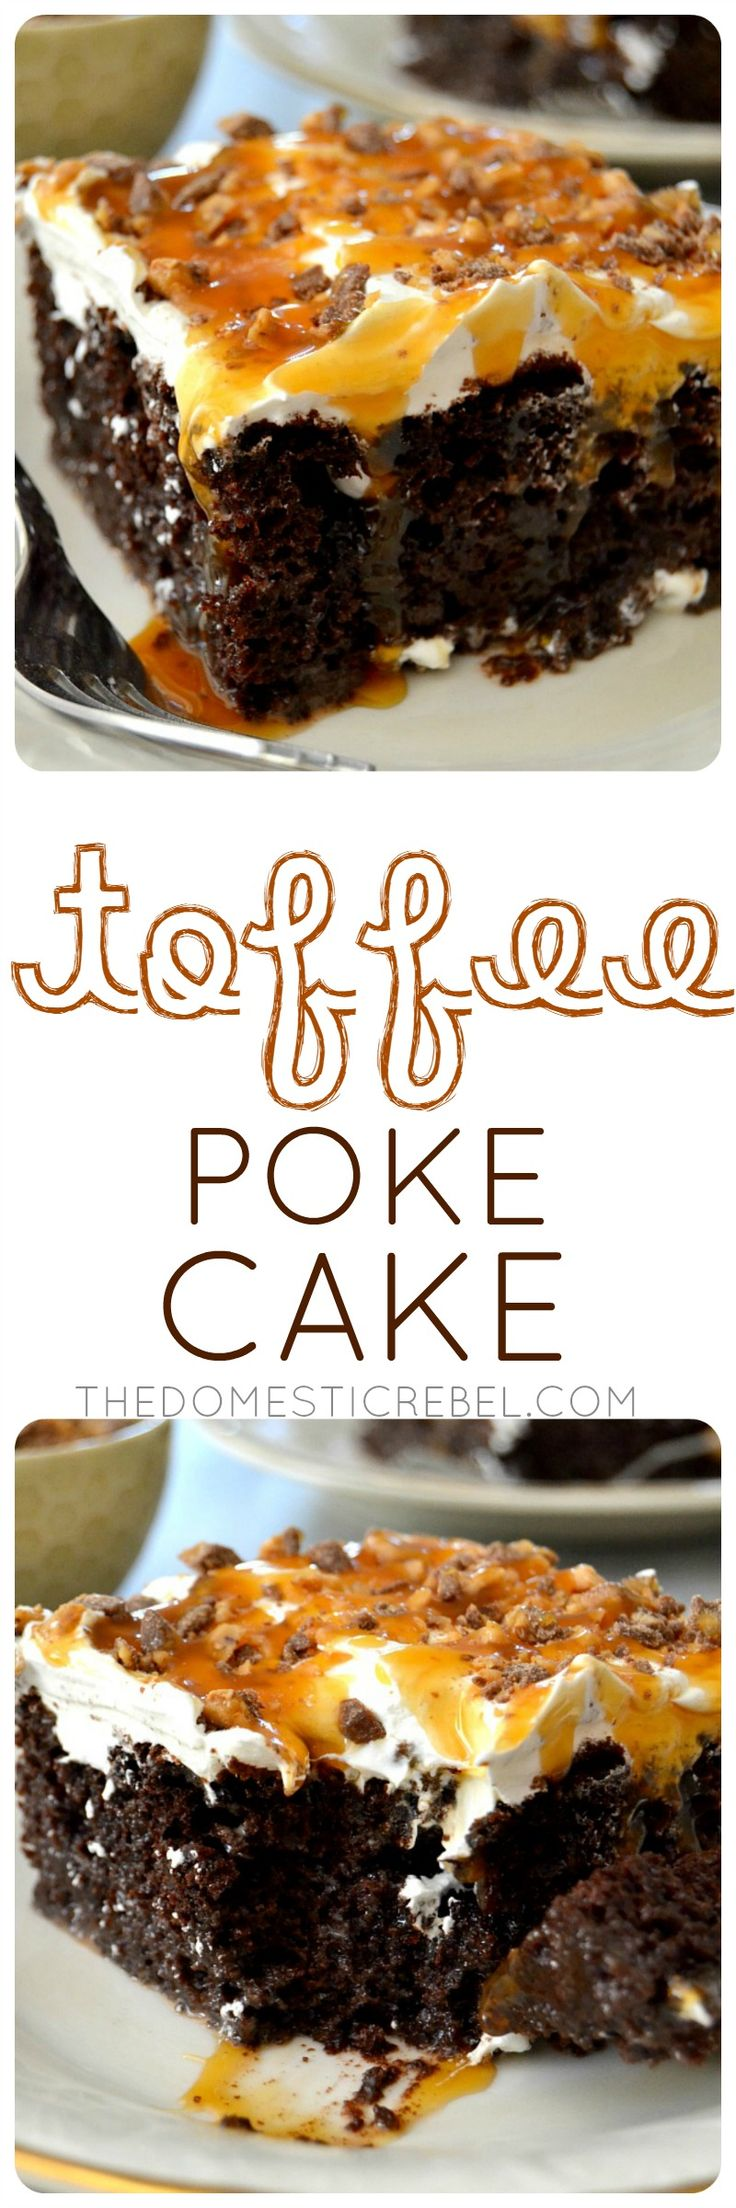 This Toffee Poke Cake is an easy, impressive dessert that pleases everyone…